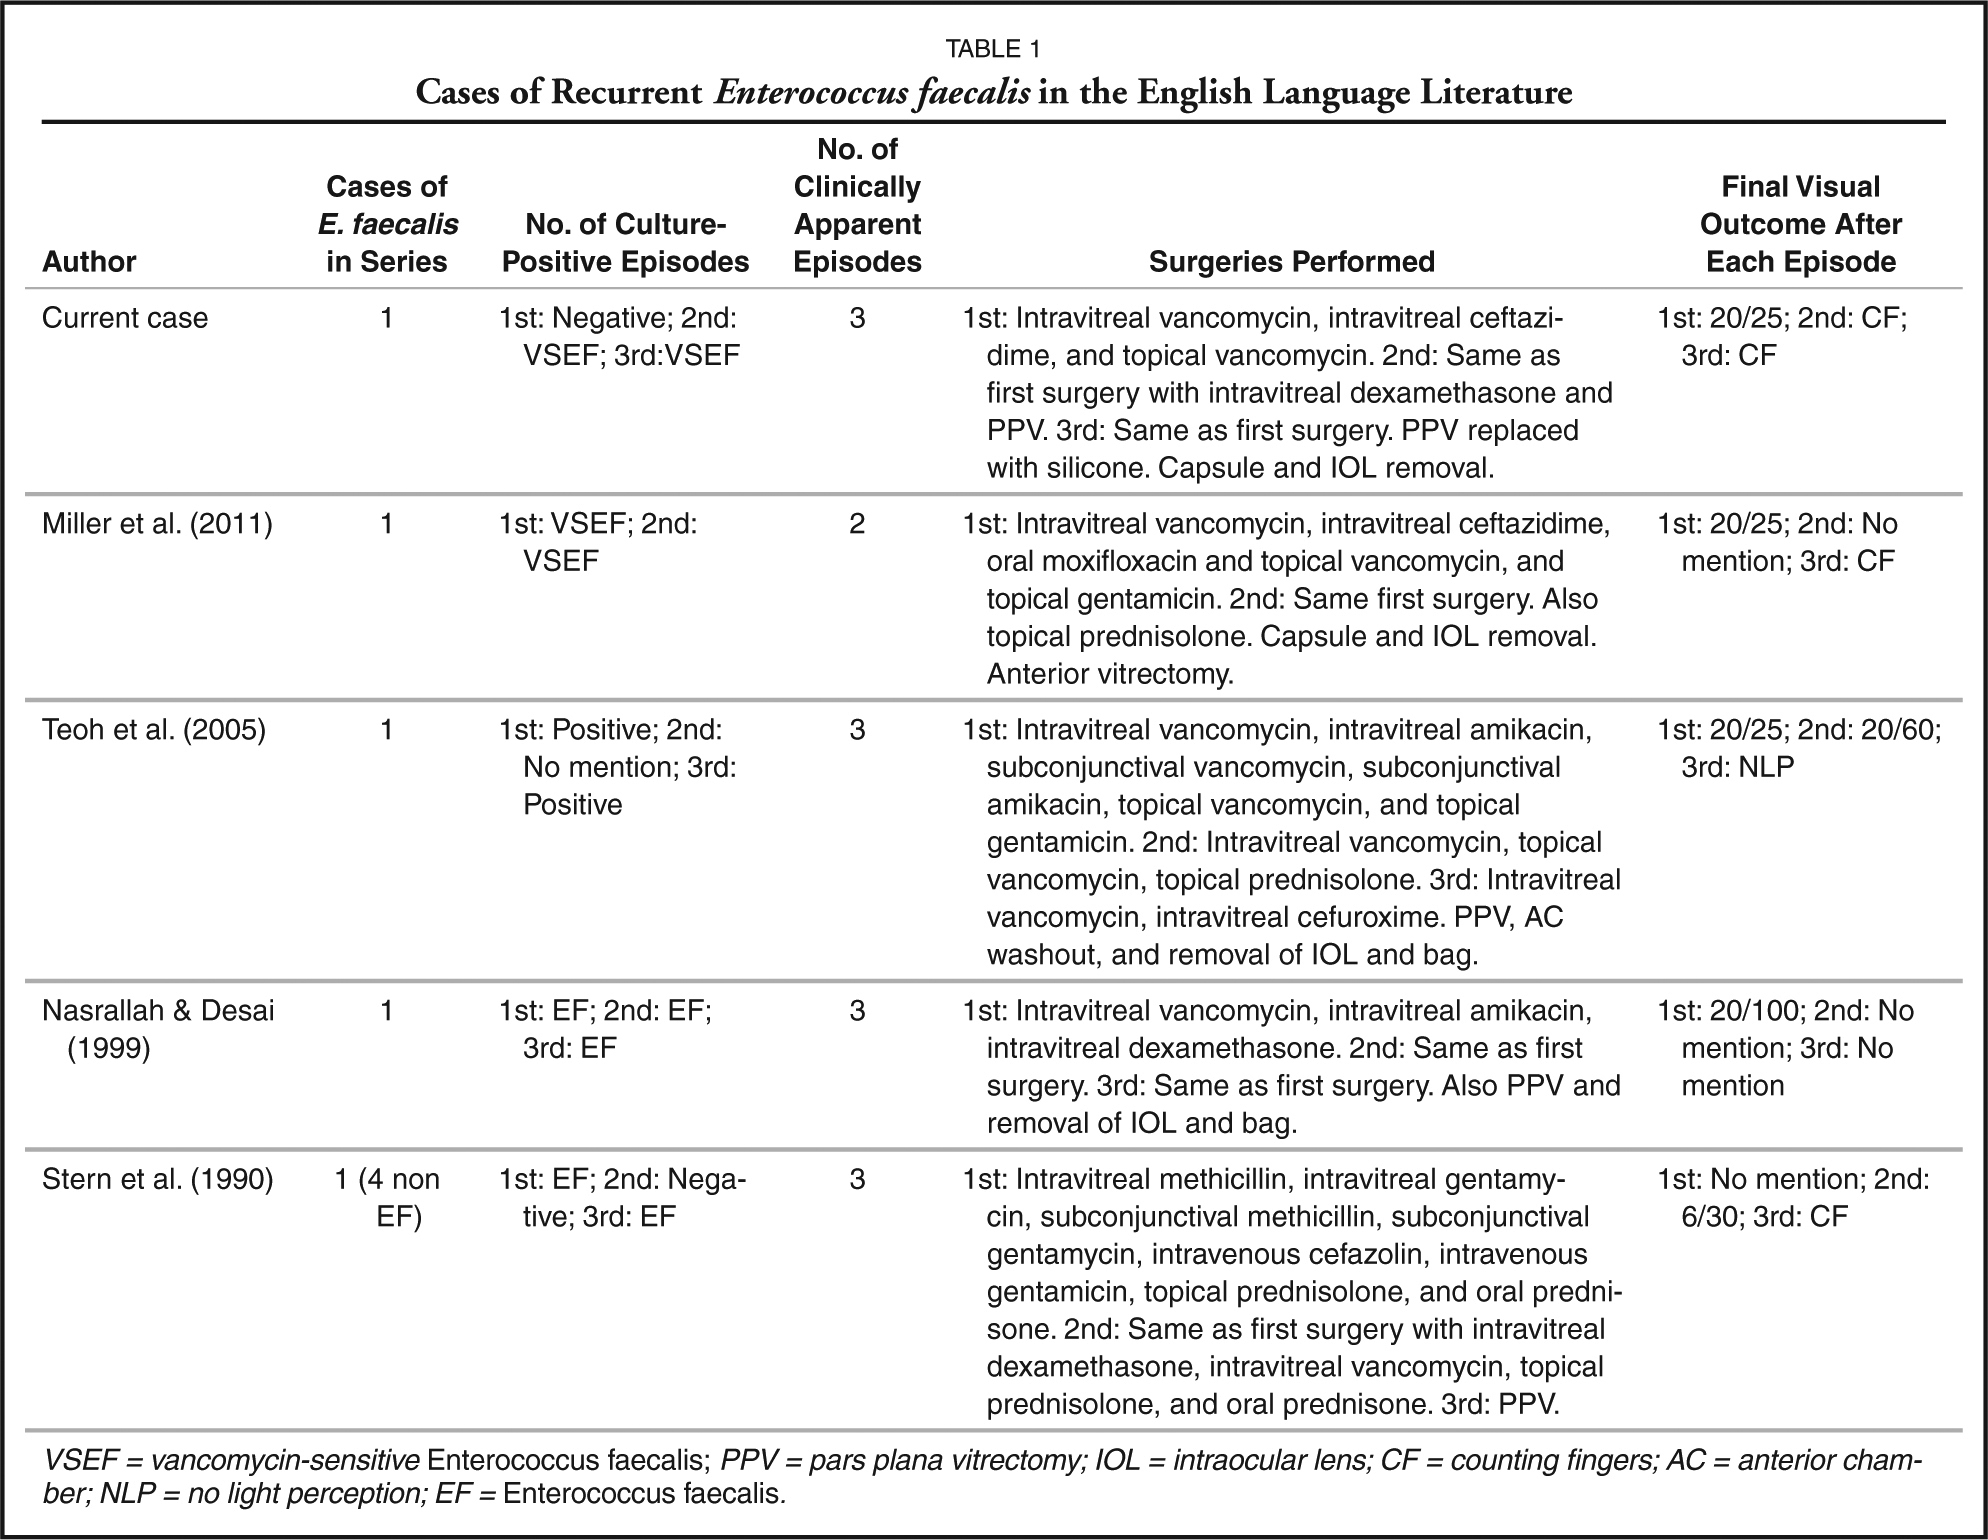 Cases of Recurrent Enterococcus faecalis in the English Language Literature